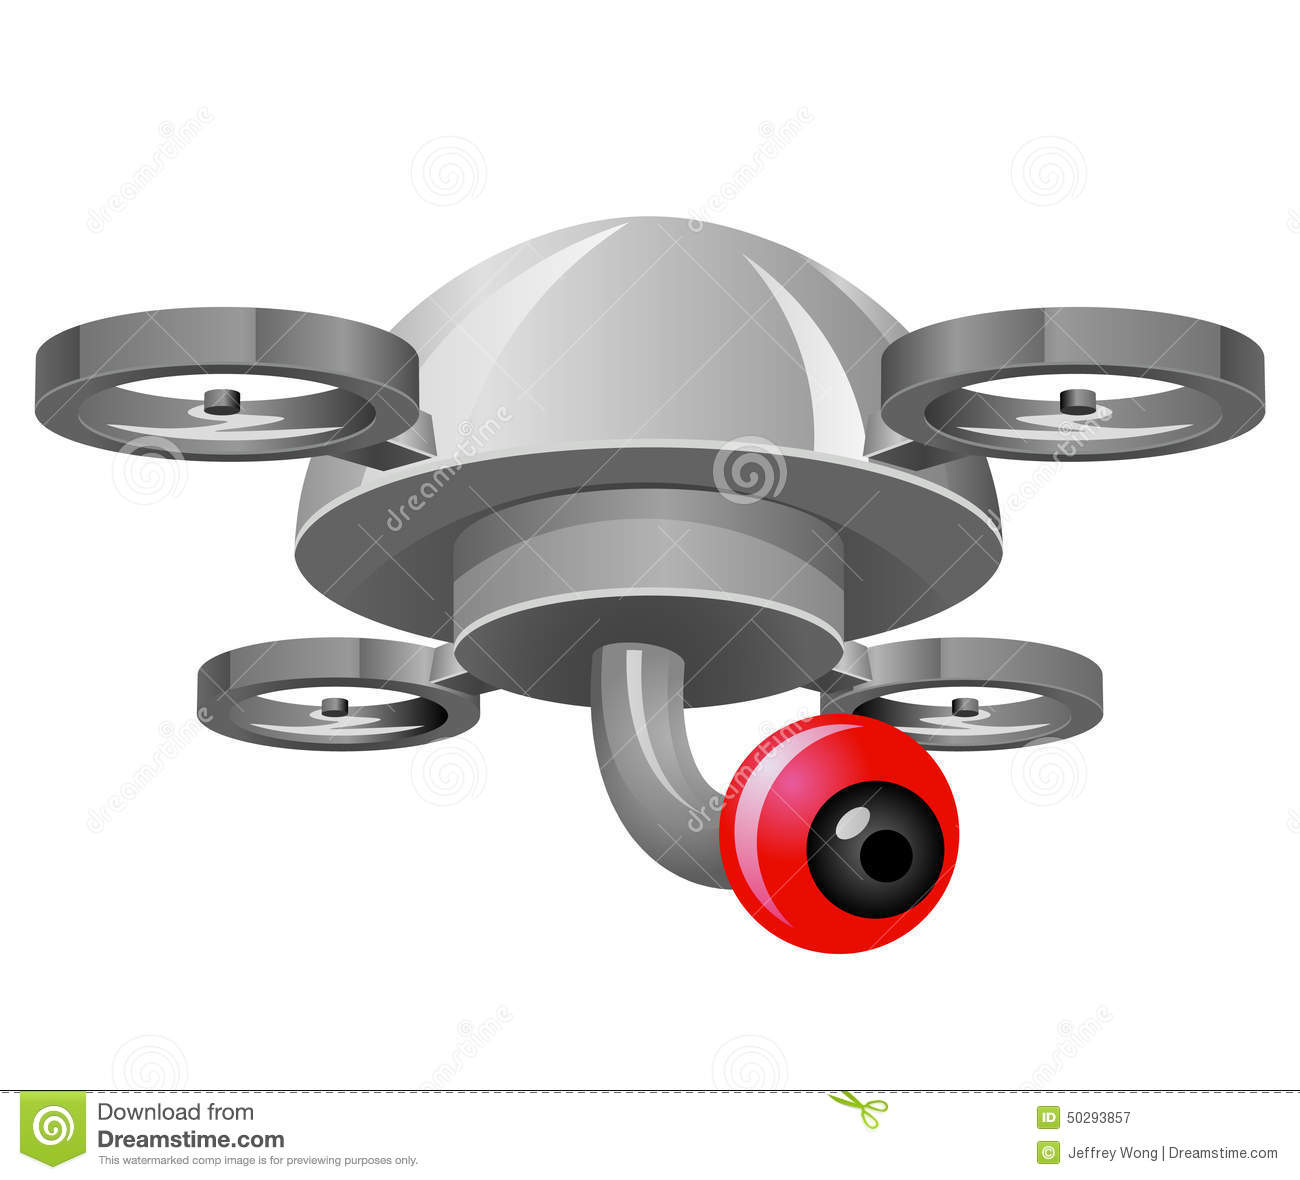 control remote airplane with Stock Illustration Drone Red Eye Camera Vector Drawing Looks Like Image50293857 on Wholesale F18 Hor  Model besides Air Ambulance Transparent Background moreover Airbus Concorde Patent New York London 1 Hour in addition Flight Controls as well Helicopterhobby wordpress.